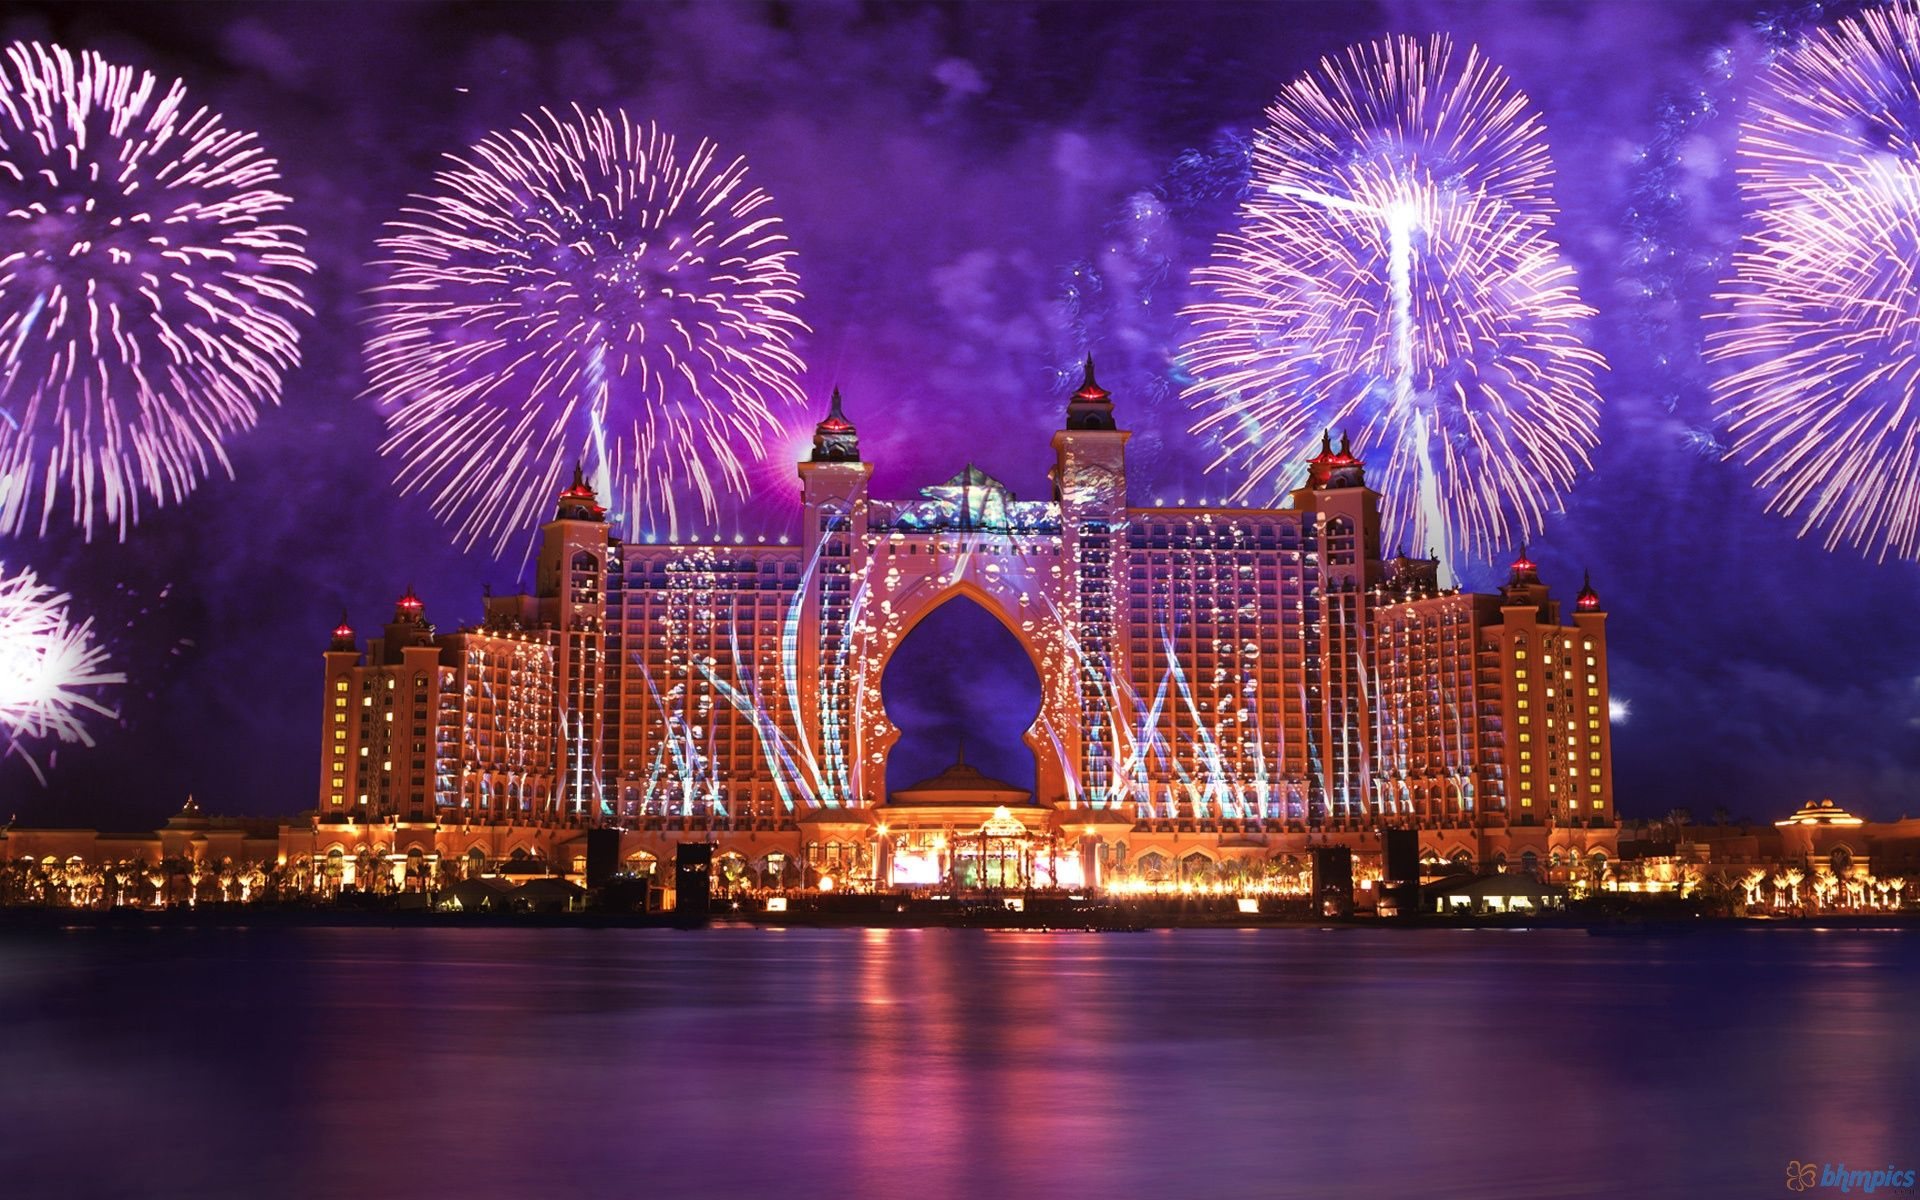 New Year's Eve at Atlantis The Palm Dubai